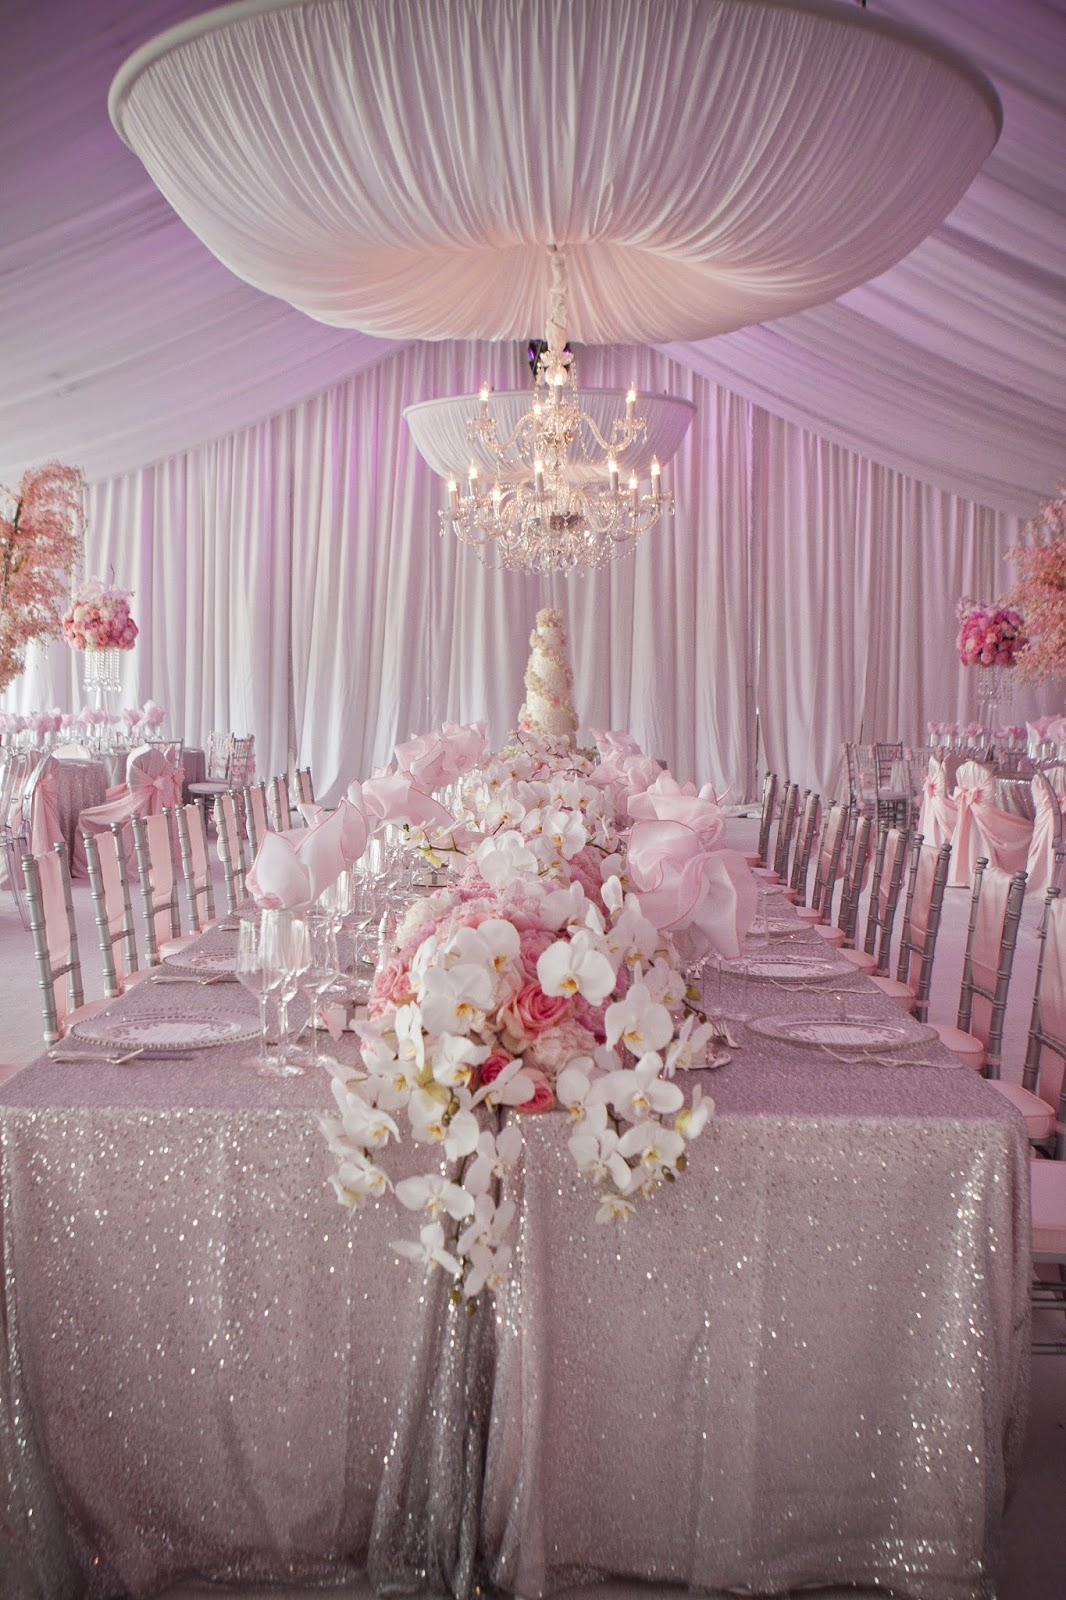 Pink Wedding Theme Will Be a Smashing Success With an Air of Sophistication